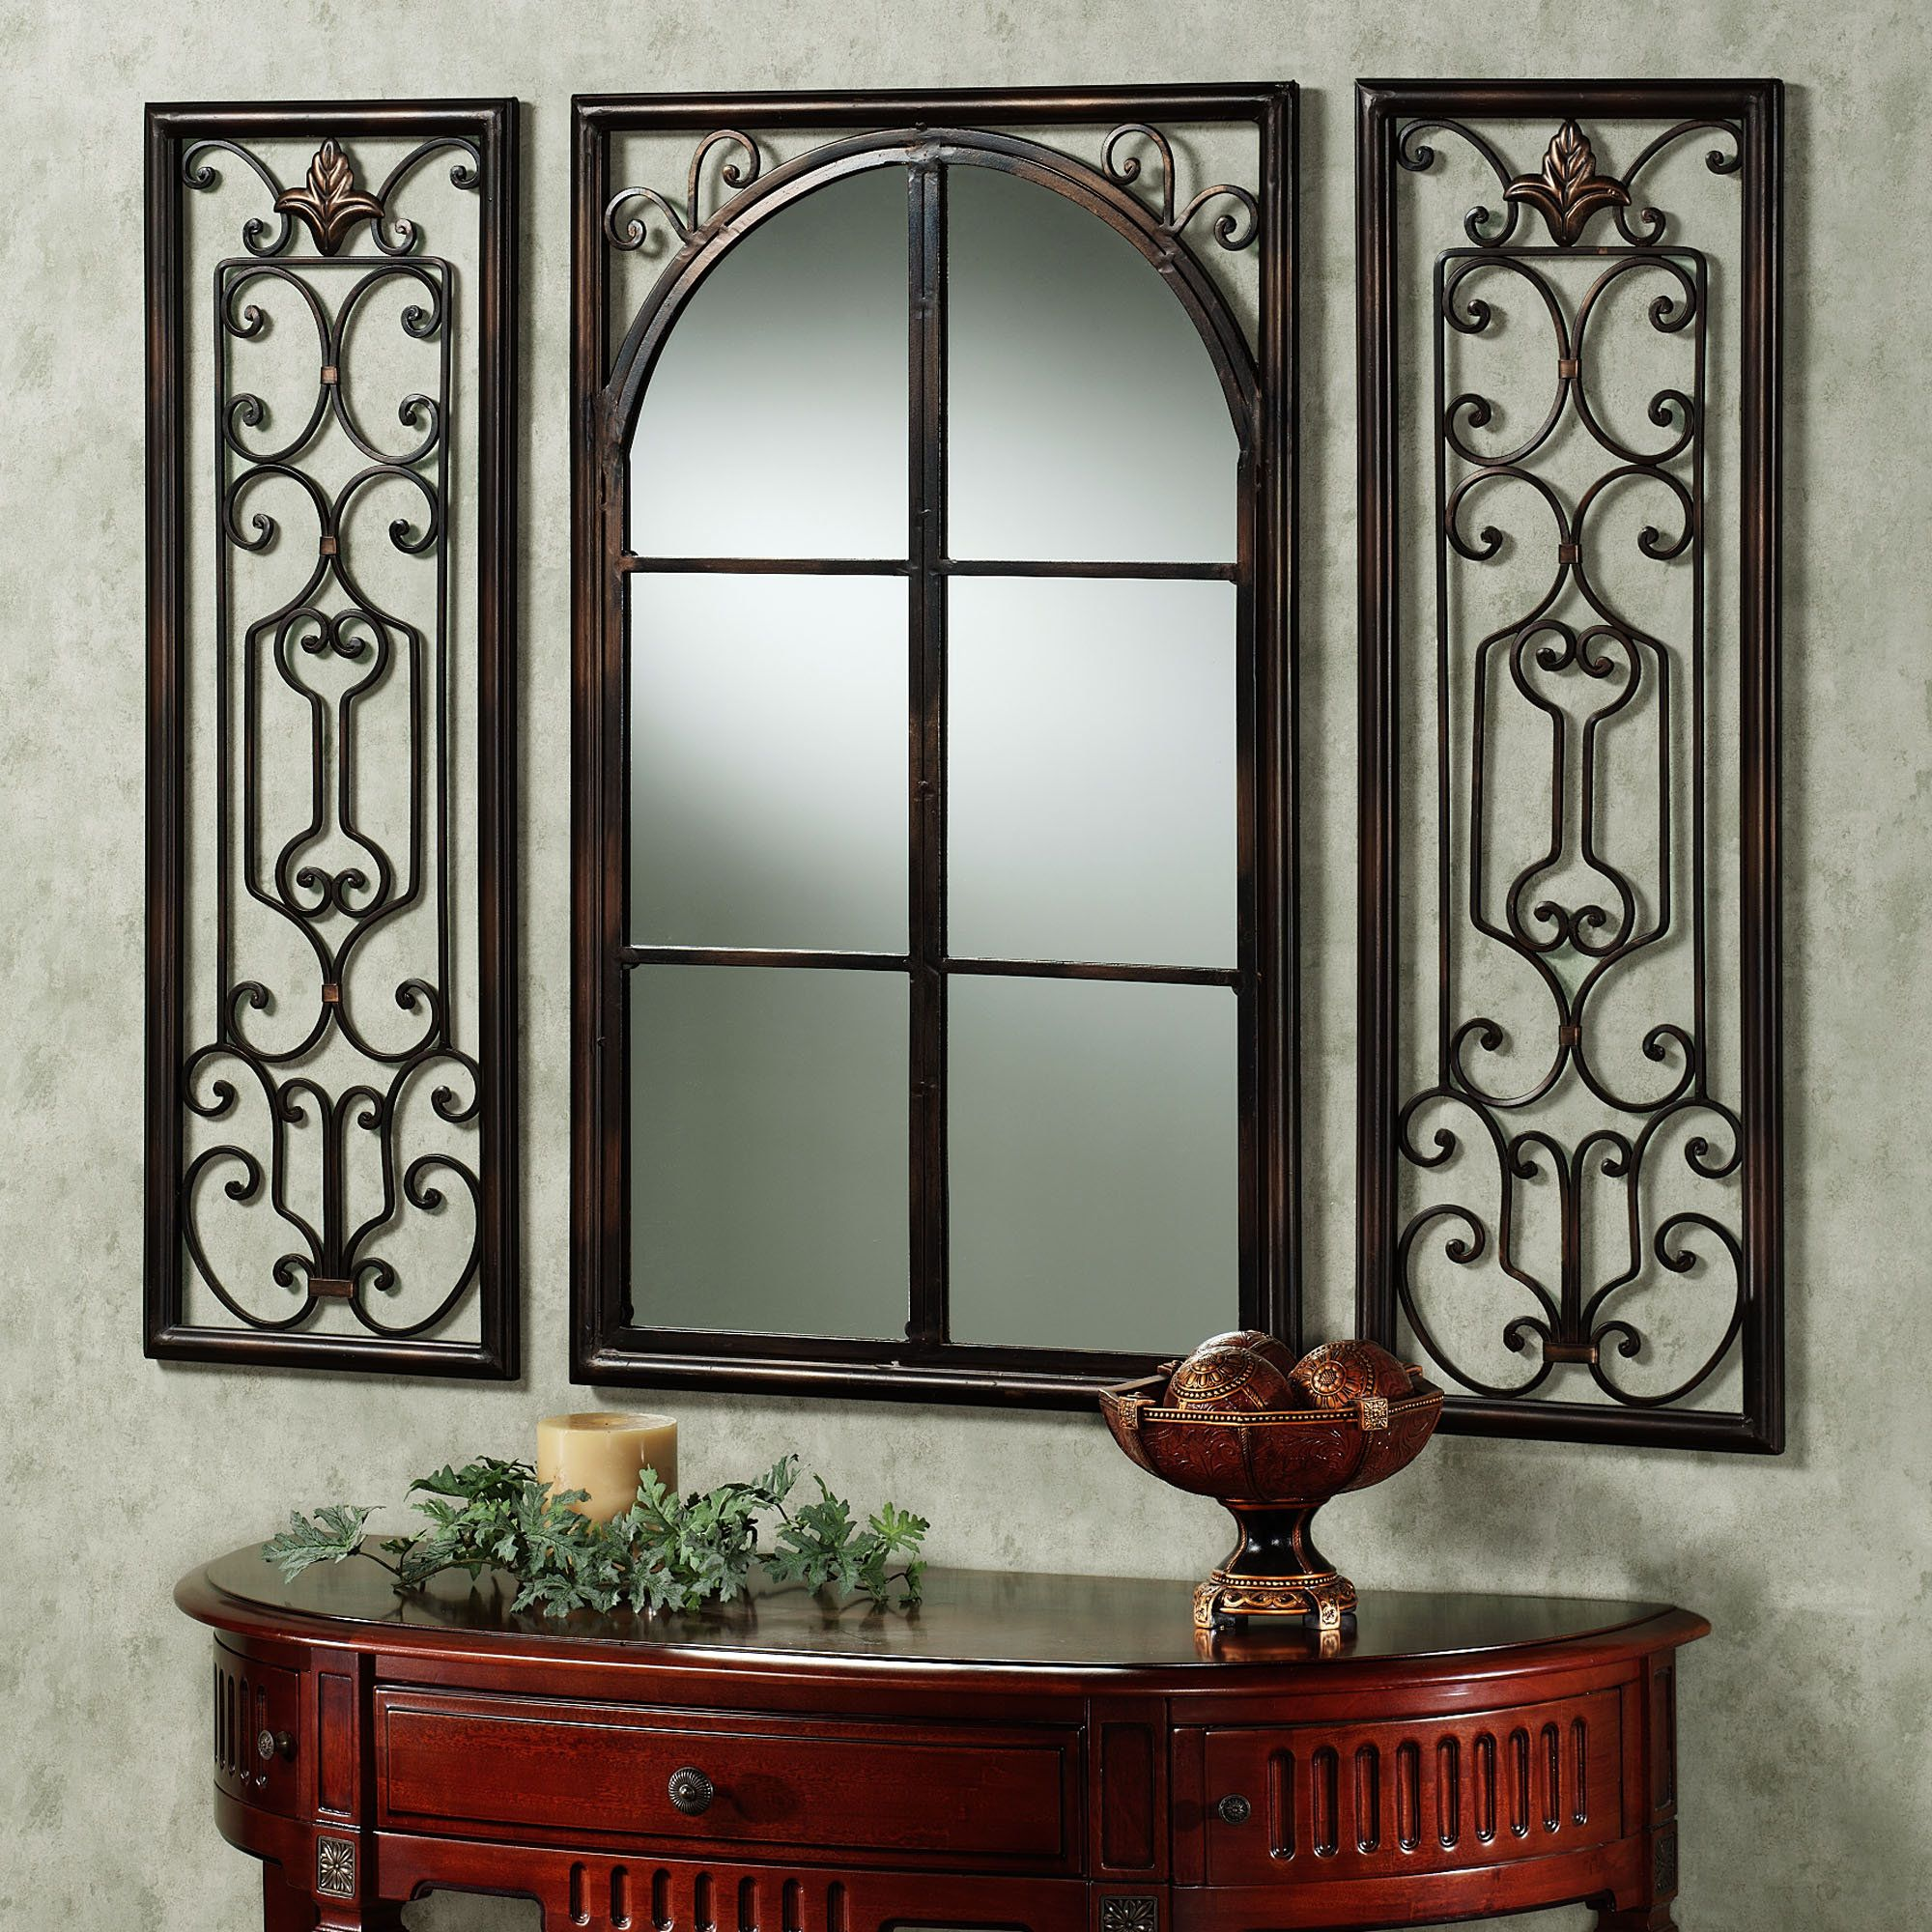 The Ornate Bronze Finished Iron Provence Wall Mirror And Shutter Set Will Add Dimension Light To Your Foyer Or Living Room Central Is Divided